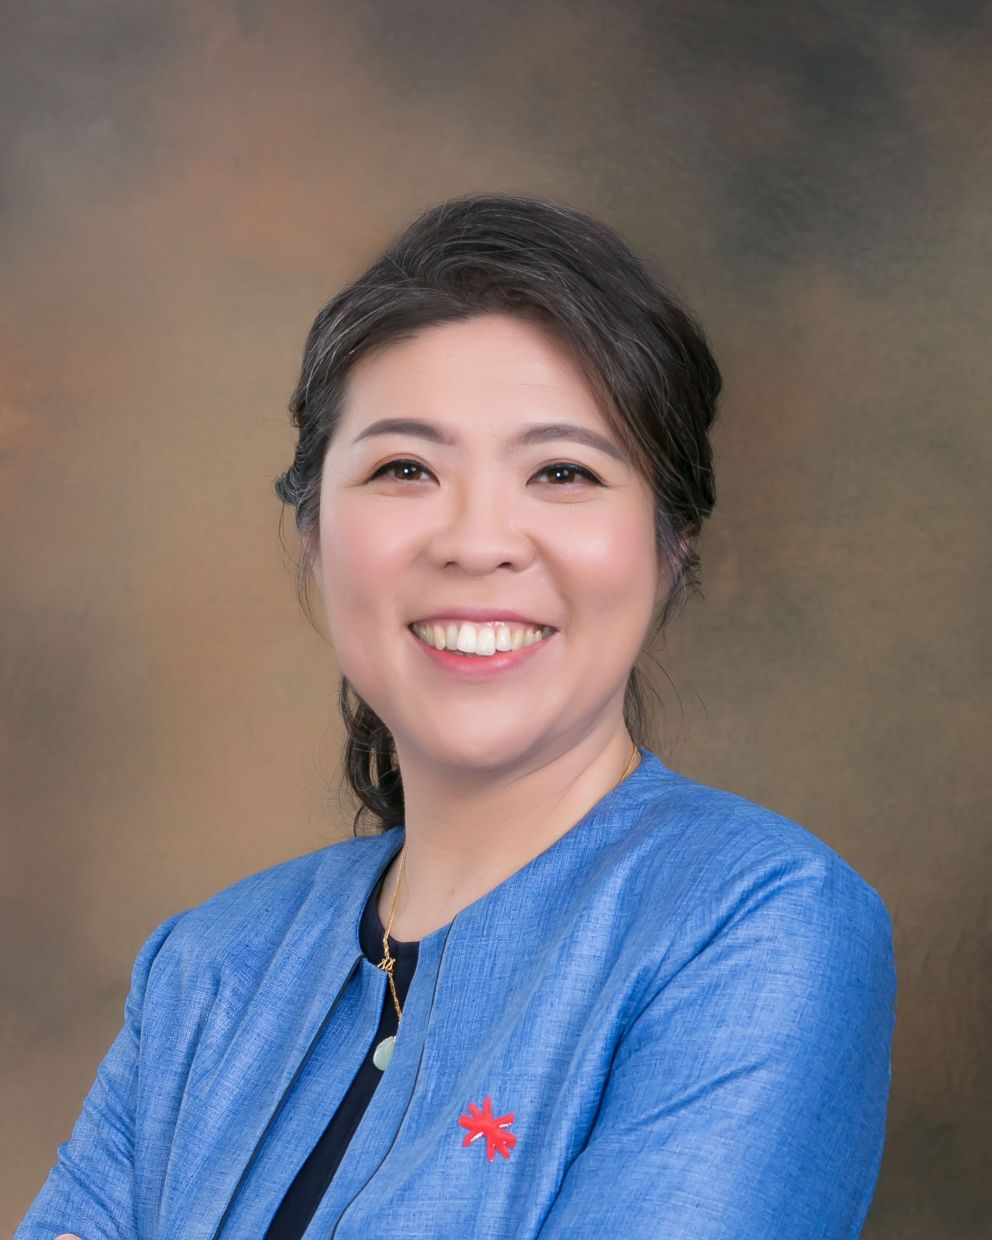 INTI International University & Colleges' chief executive officer Tan Lin Nah